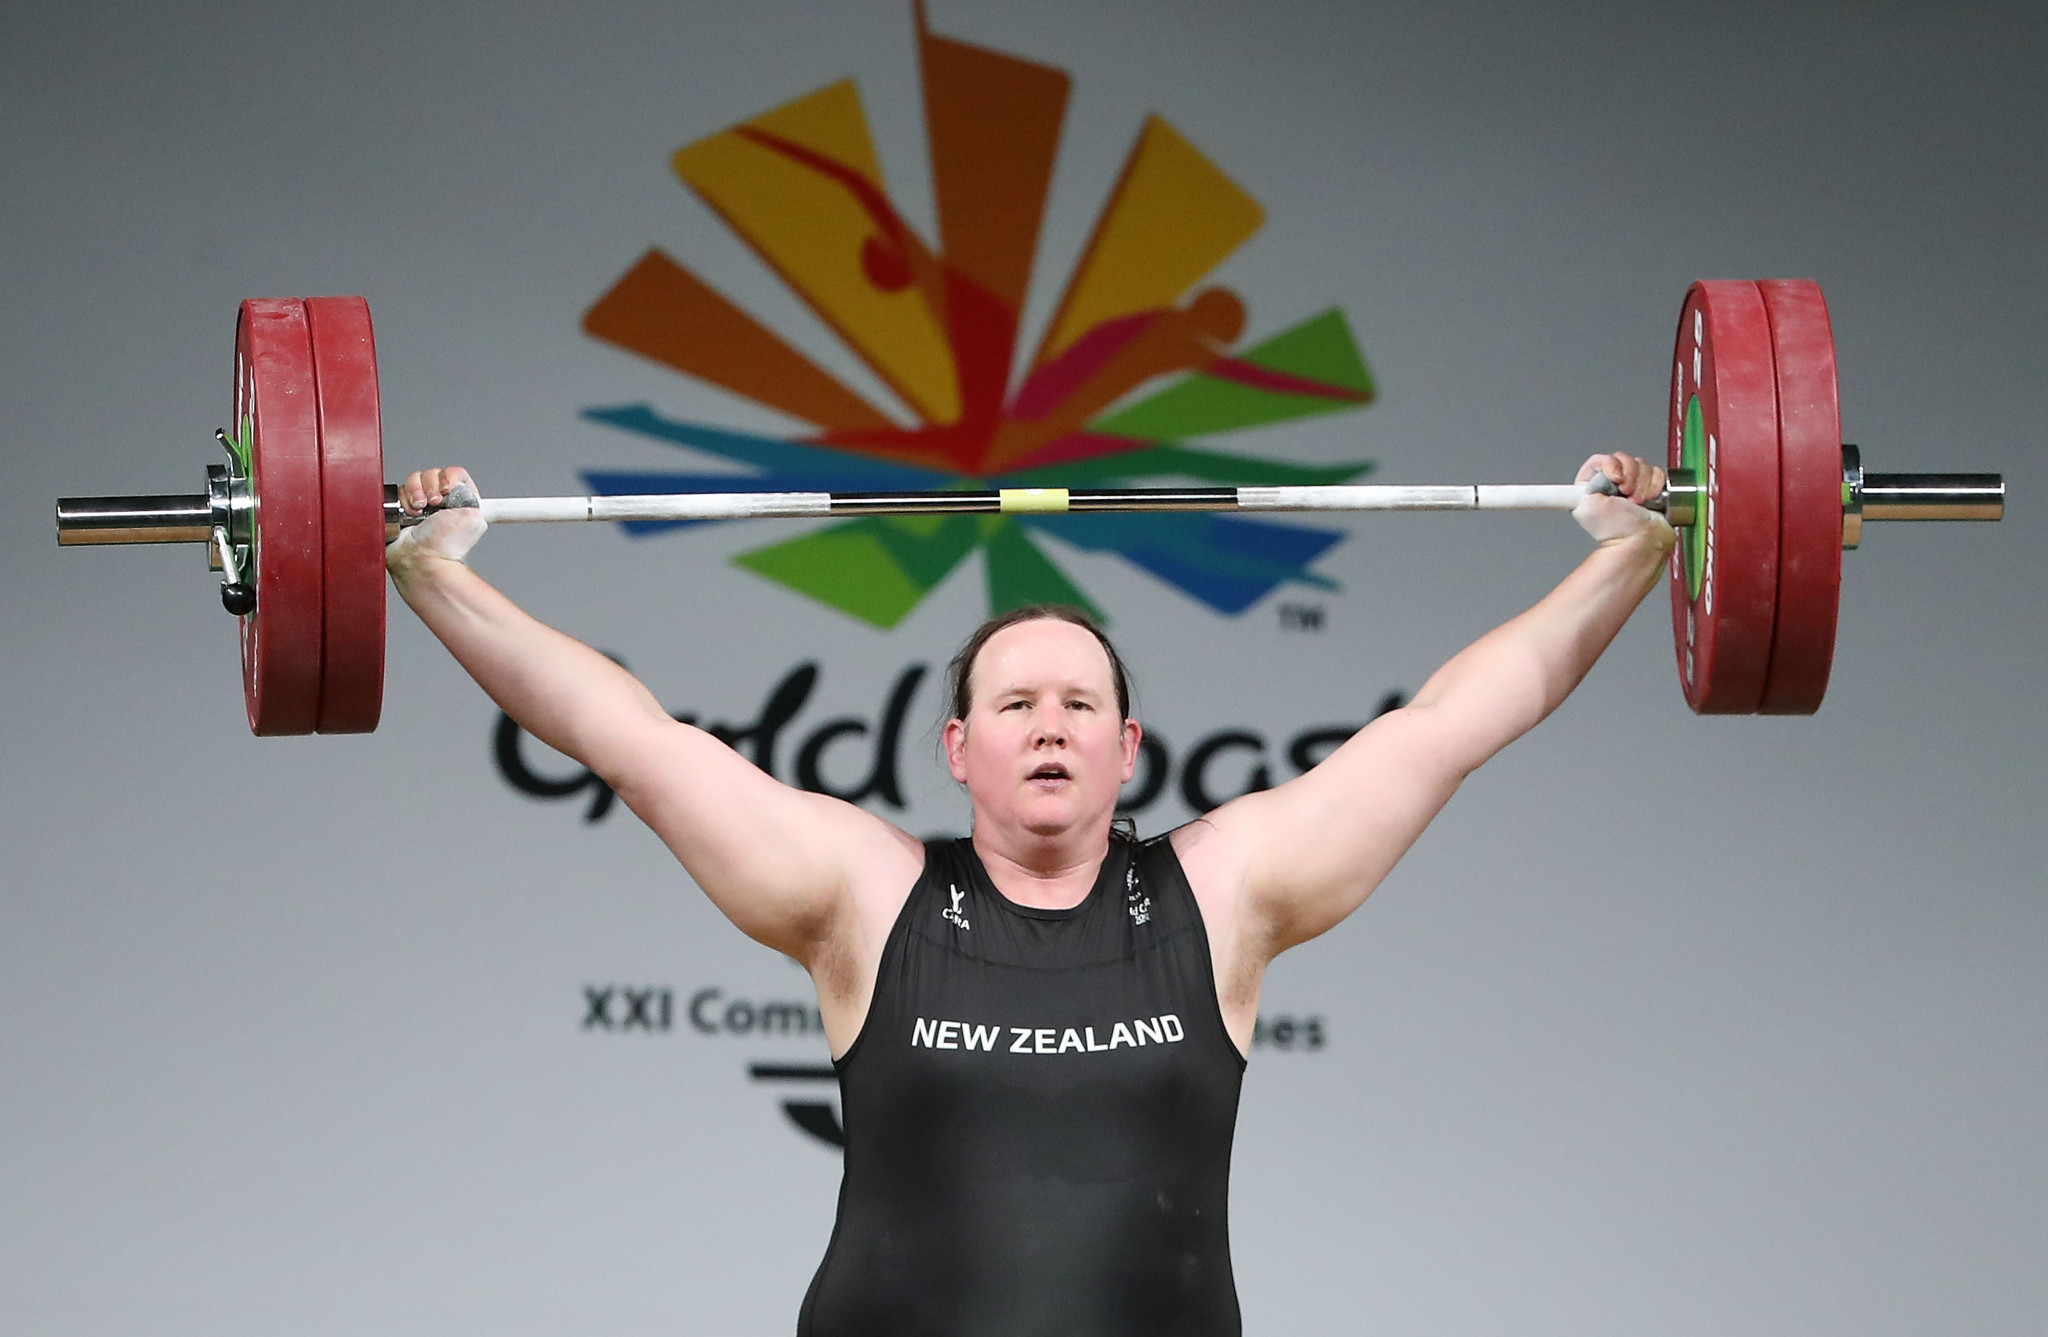 Bad news for record-breaking transgender weightlifter Laurel Hubbard in her Olympic quest